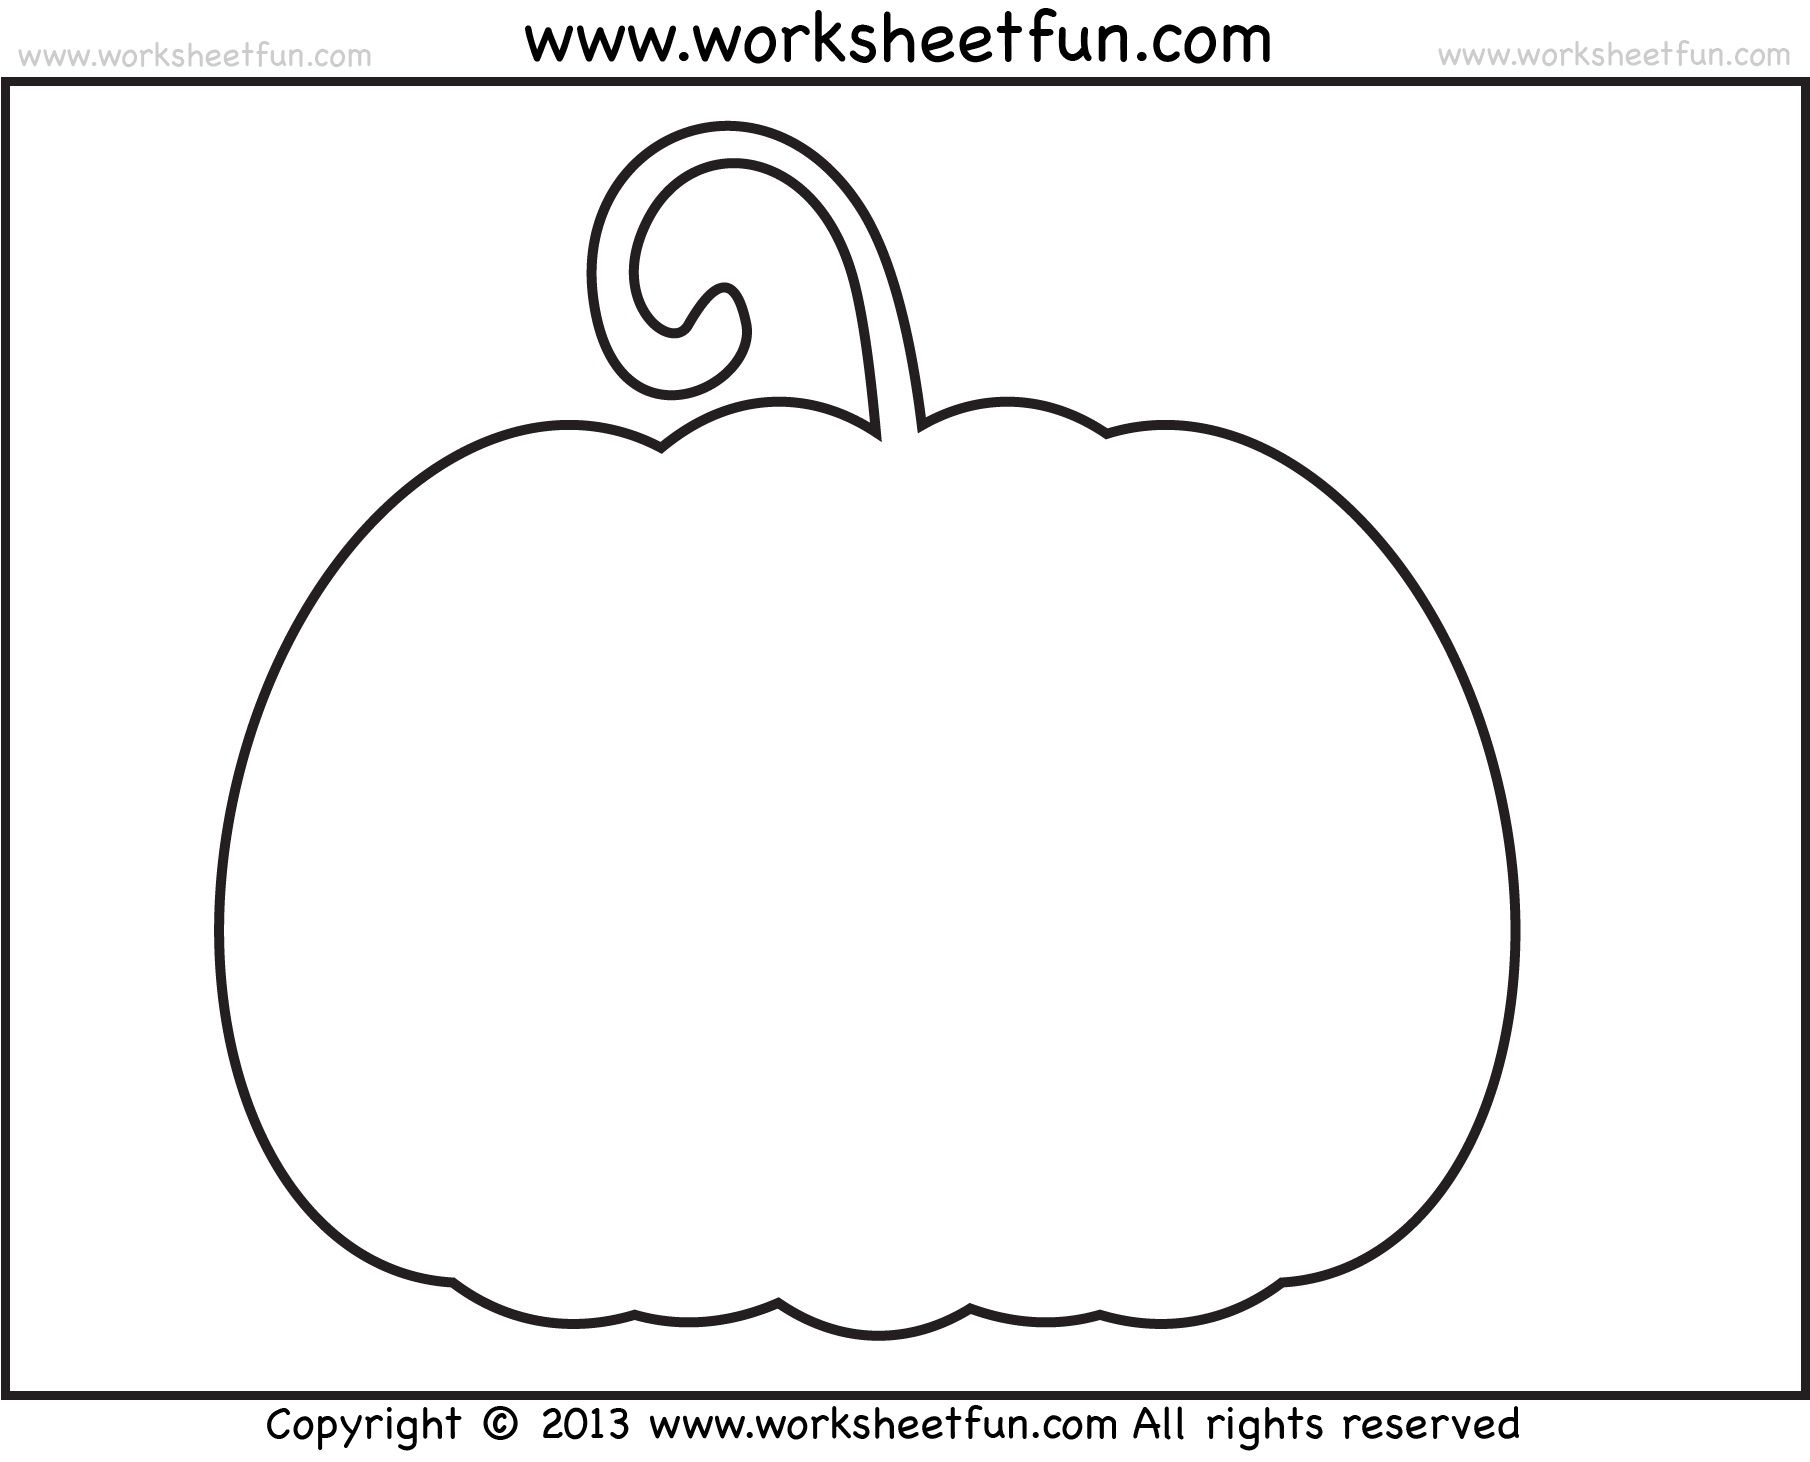 001 Wondrou Free Pumpkin Template Printable Design  Easy Carving Scary StencilFull